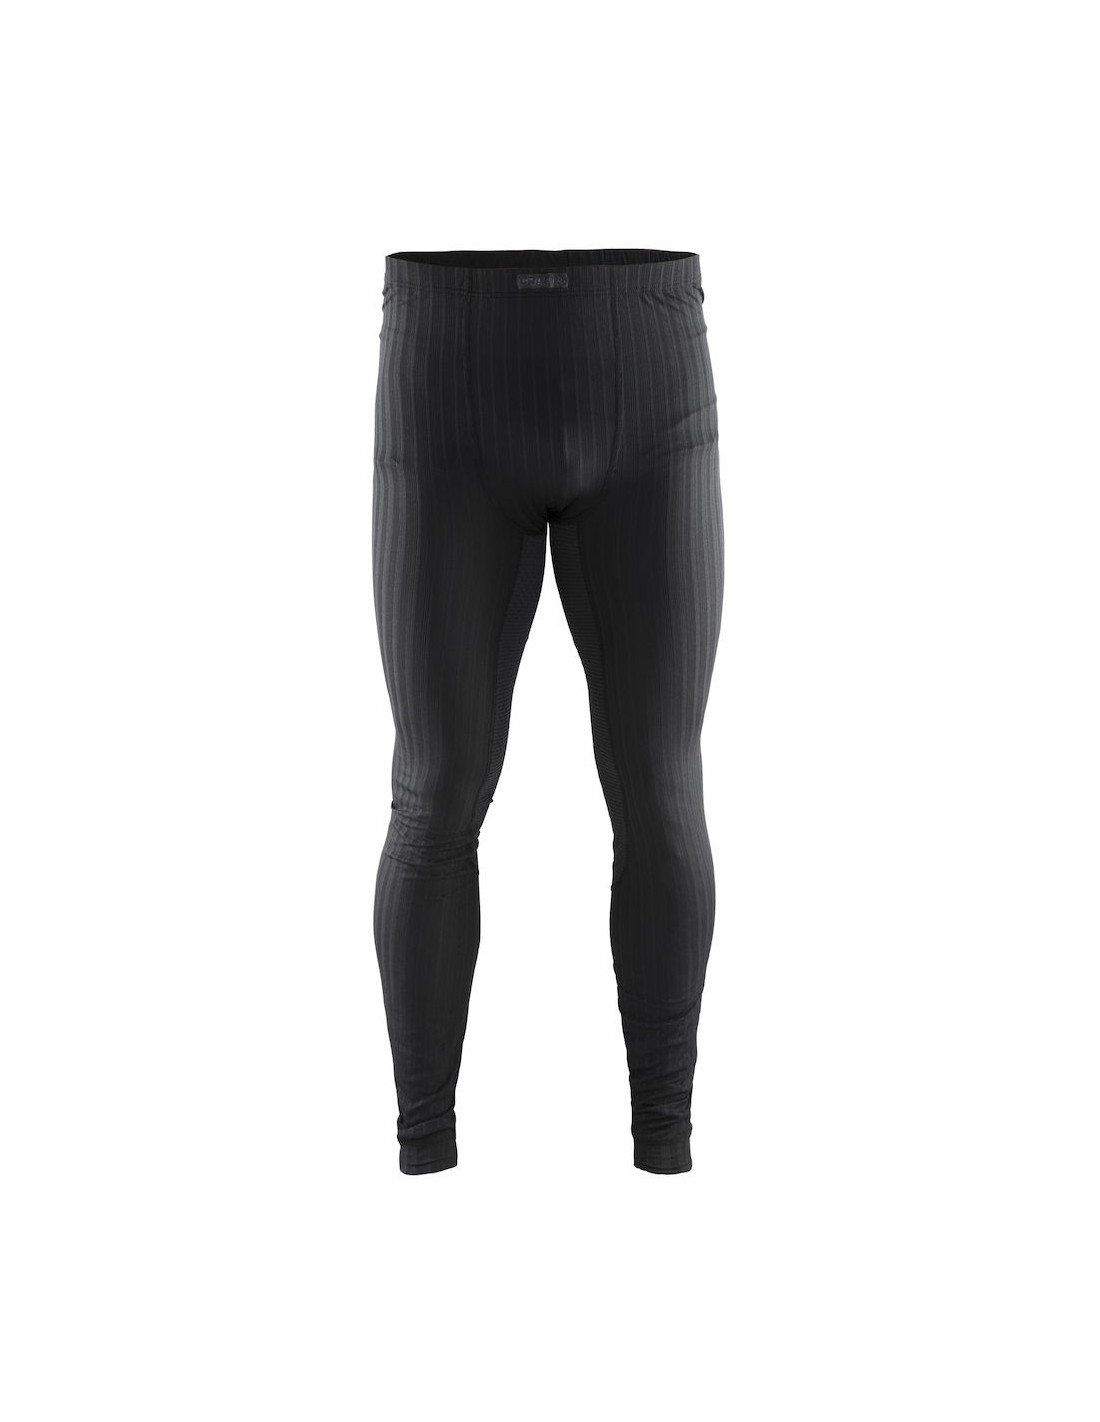 2a8051156 Craft | Active extreme 2.0 Pants